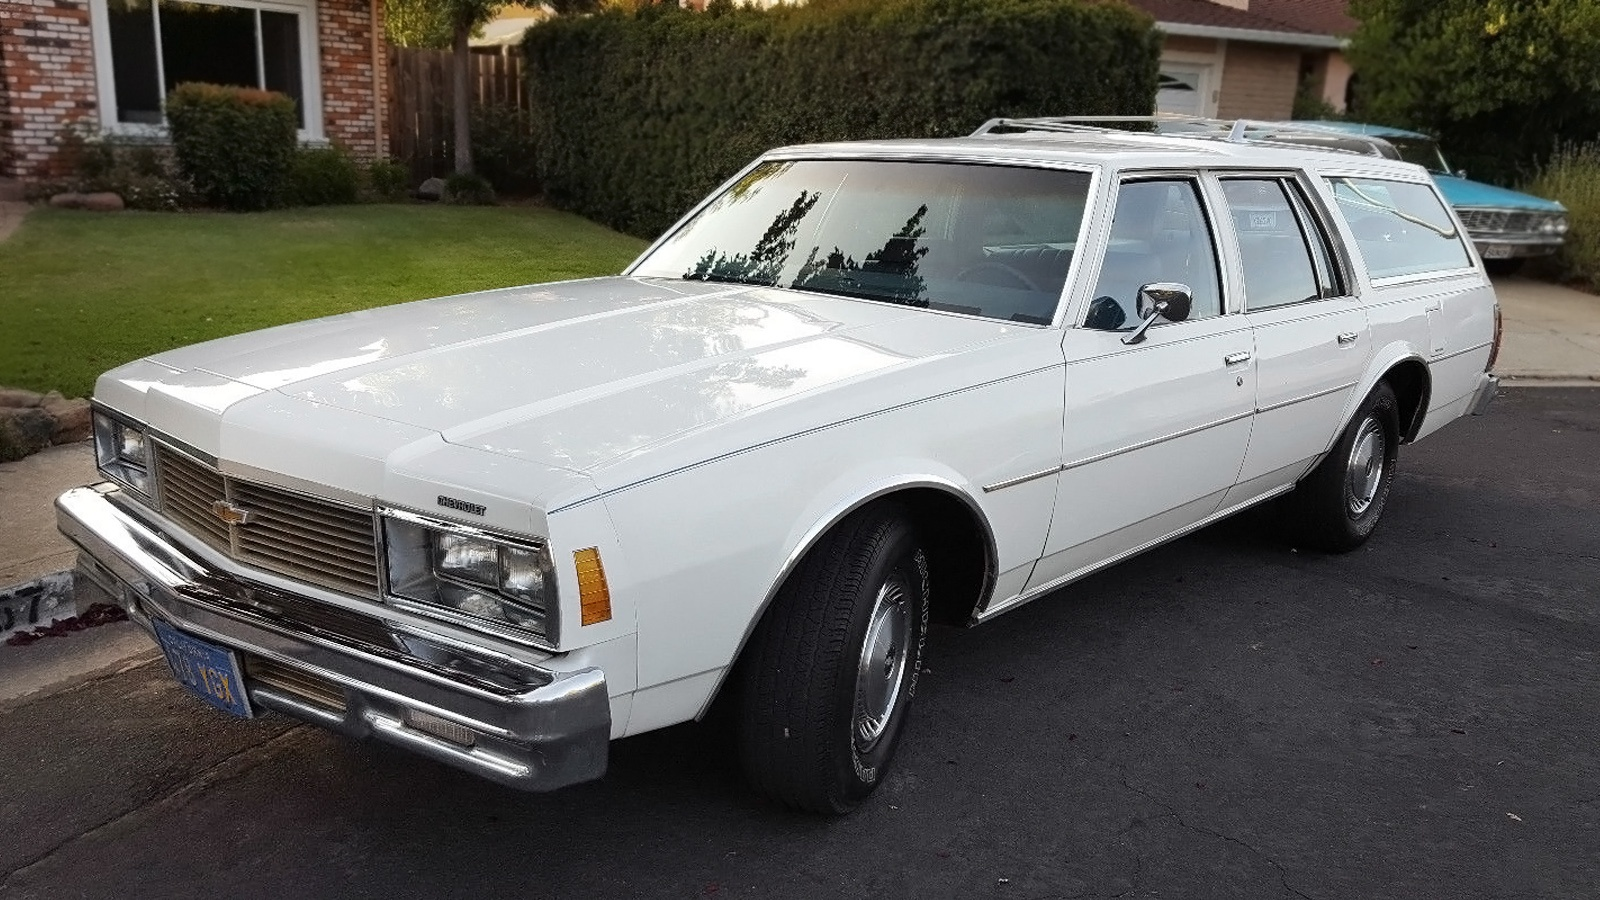 Collectible Or Not 1979 Chevrolet Impala Wagon